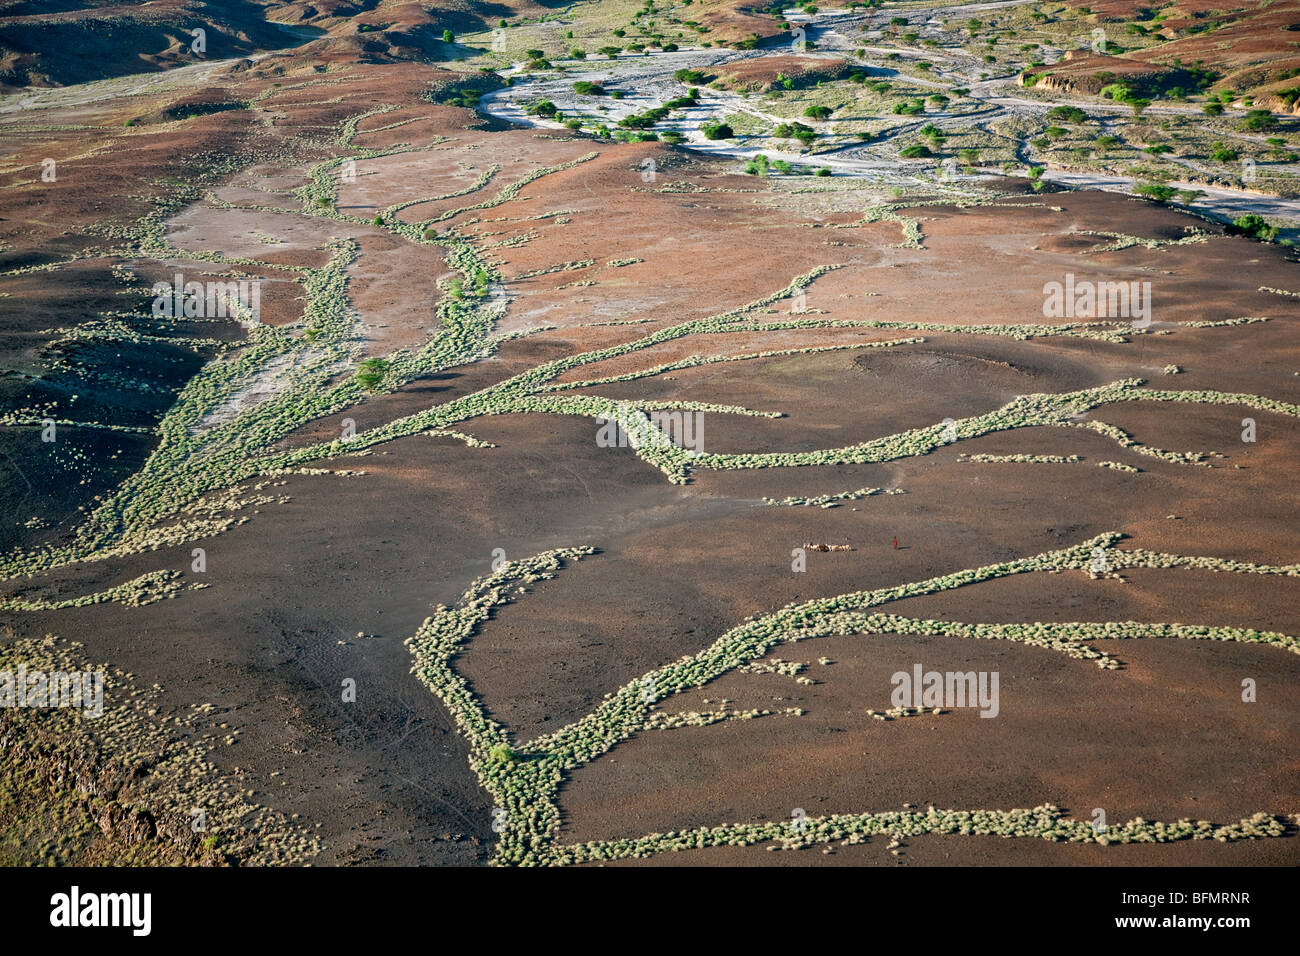 A Turkana girl herds goats through inhospitable country where the only vegetation is found along seasonal water - Stock Image